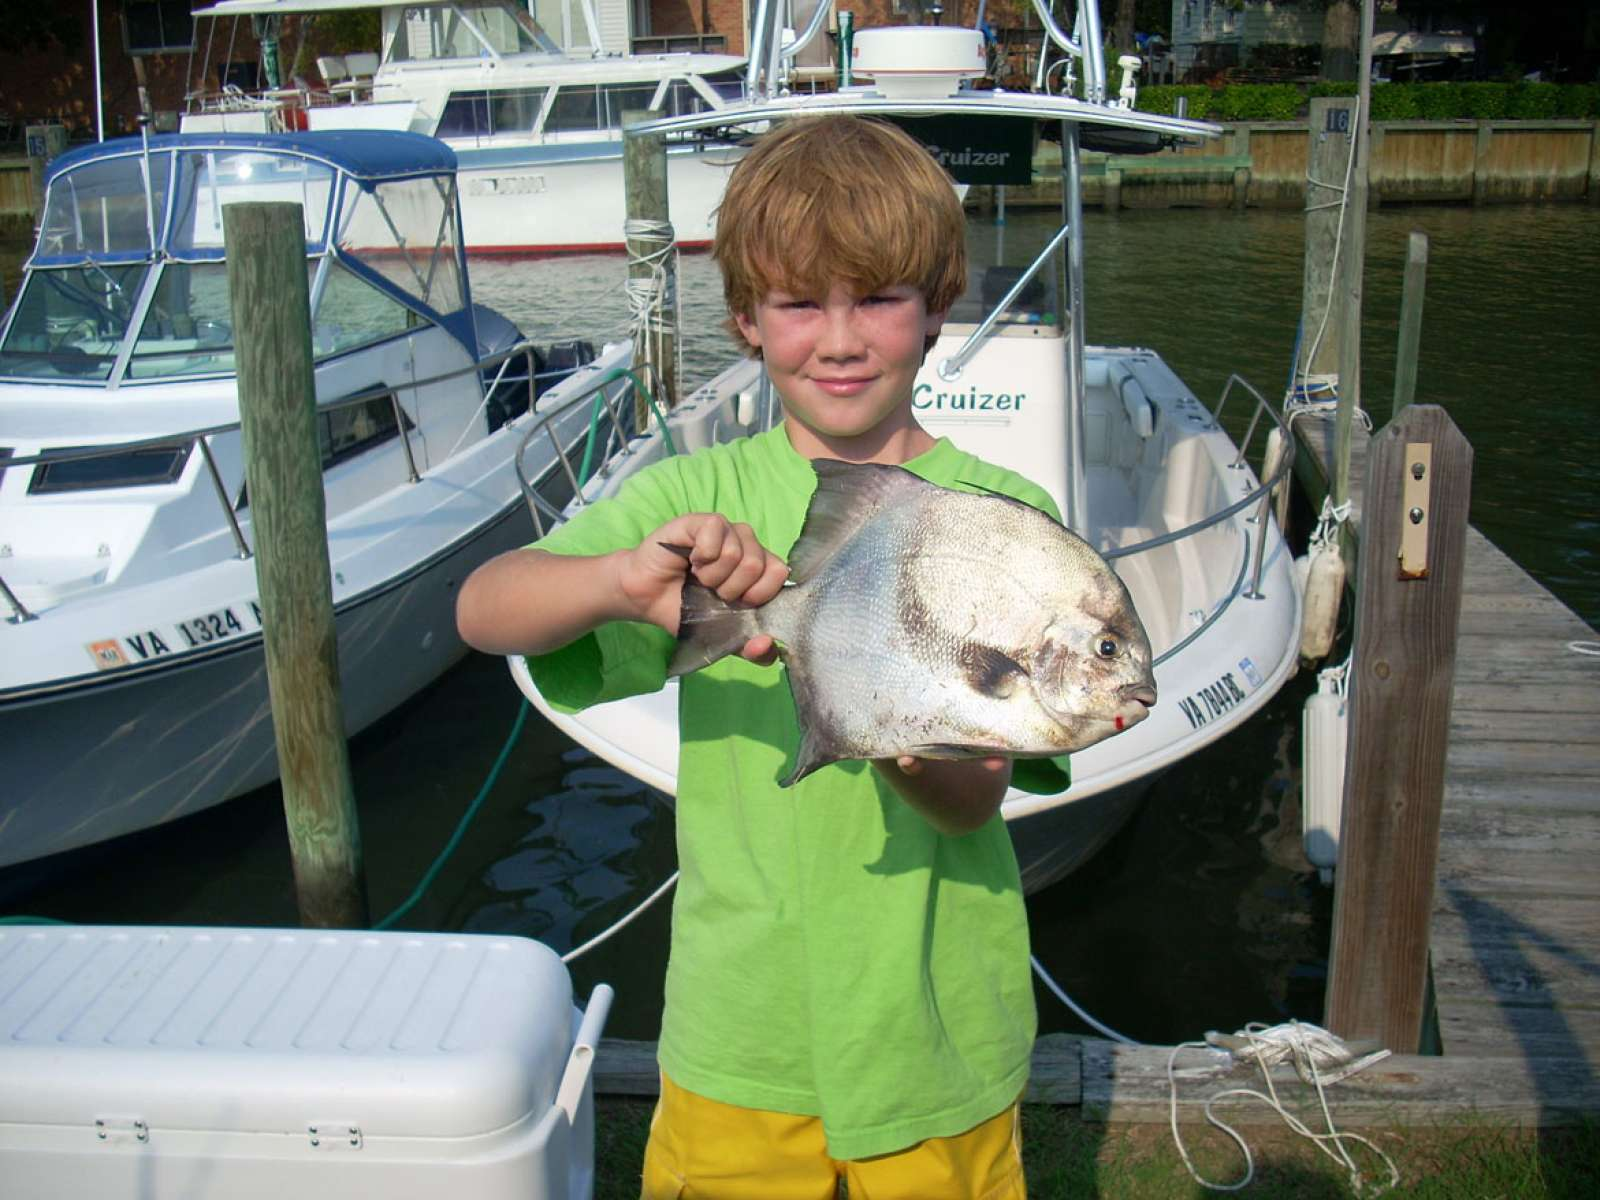 Hunter Foster from Suffolk, Virginia fishing